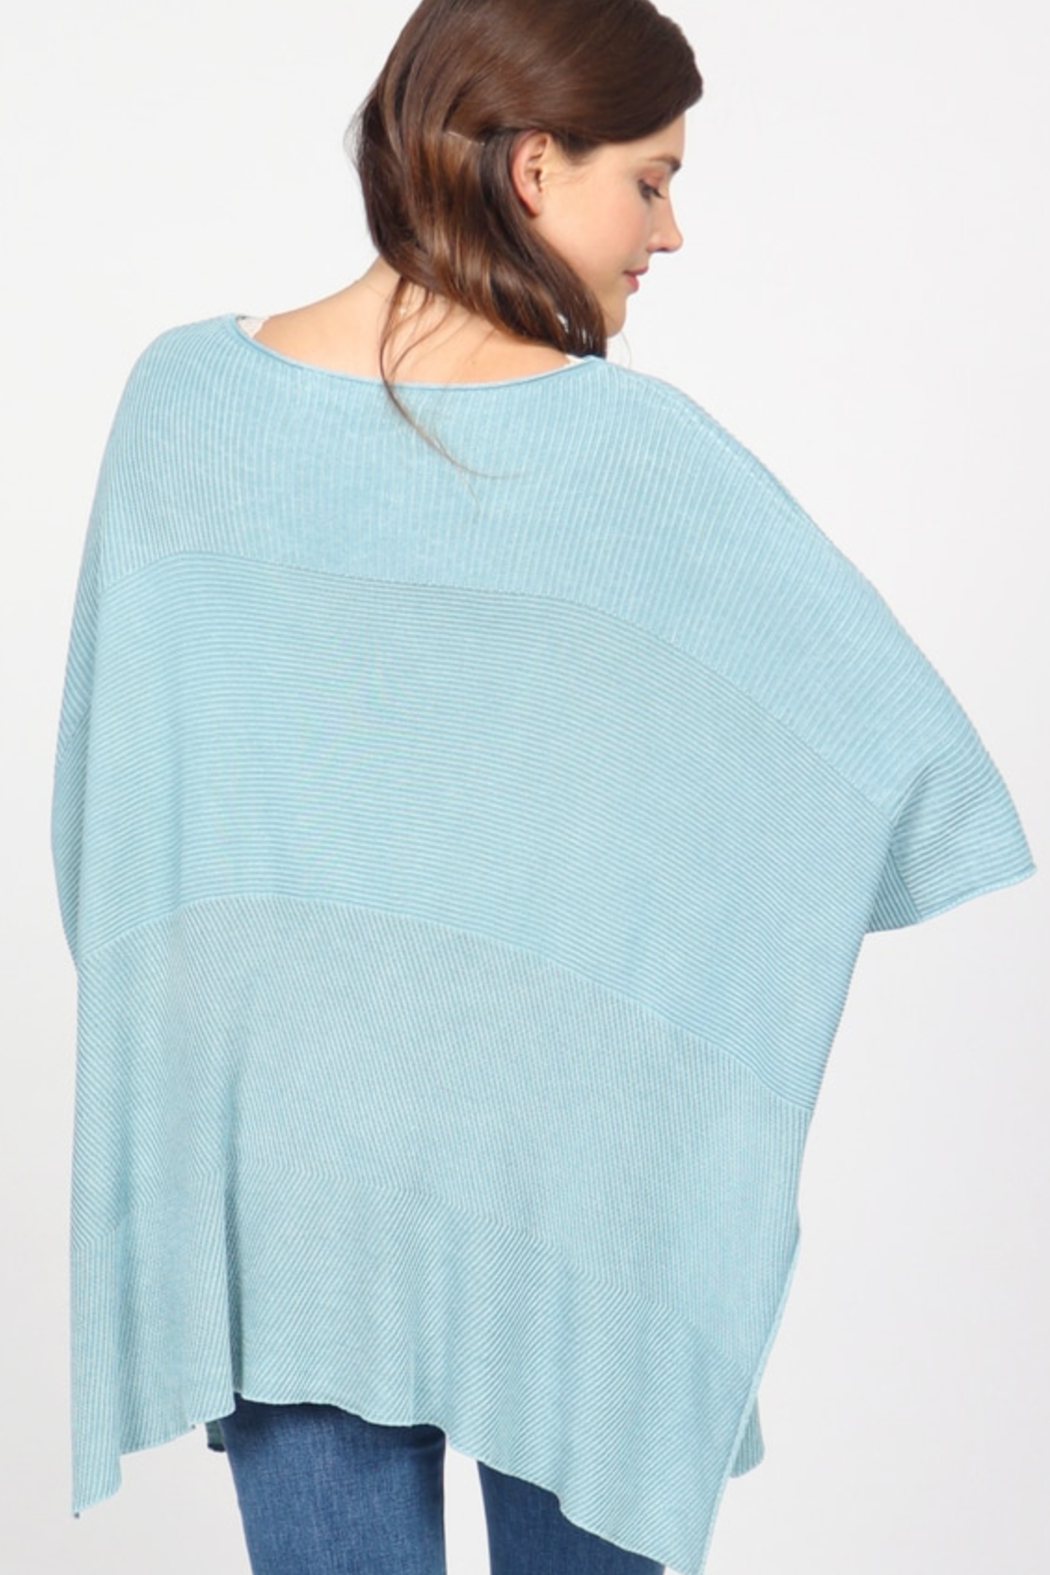 M. Rena Mineral Wash Scoop Neck Sweater - Side Cropped Image